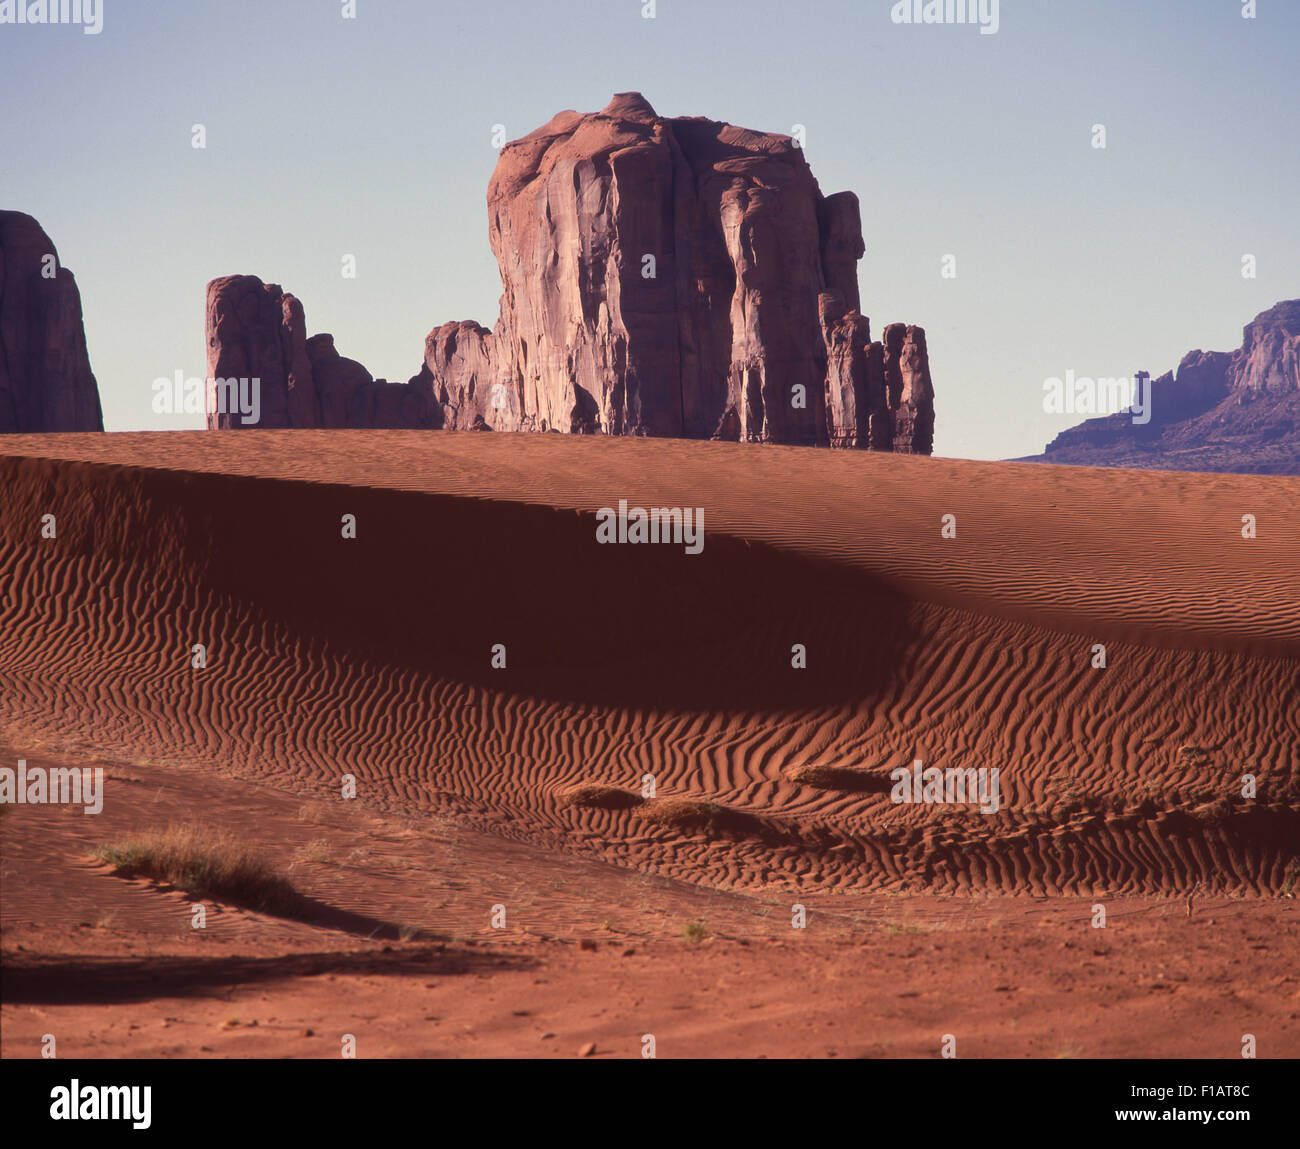 Monument Valley Navajo Tribal Park - Stock Image